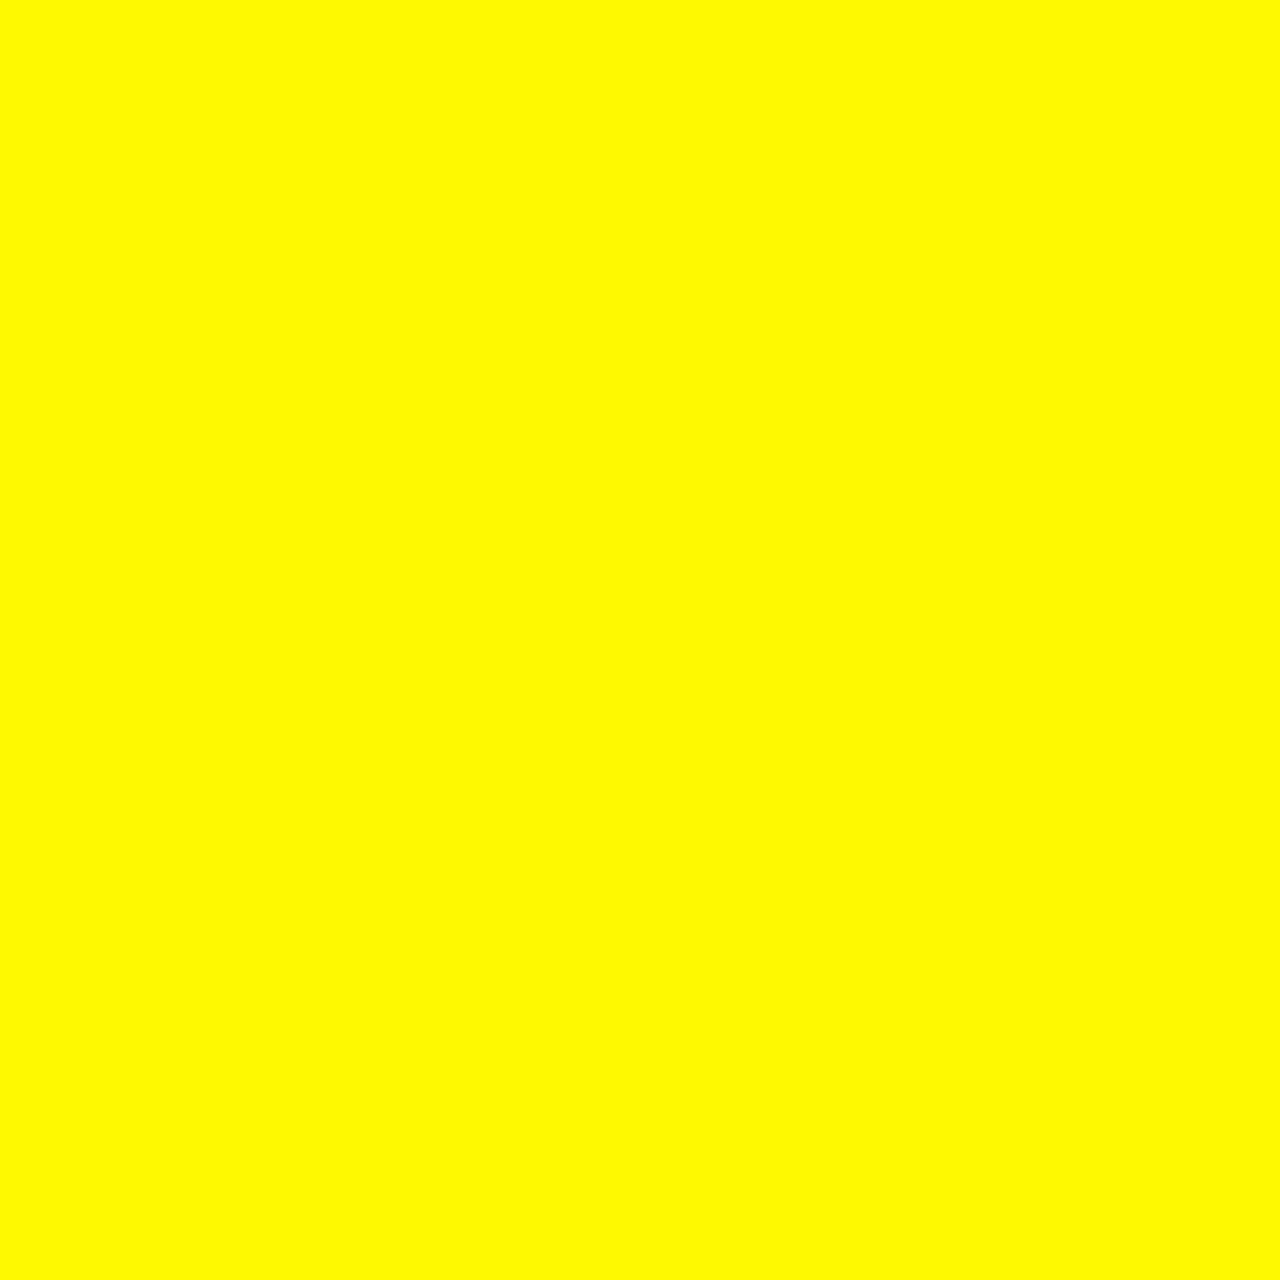 #4590 Rosco Gels Roscolux CalColor 90 Yellow, 20x24""